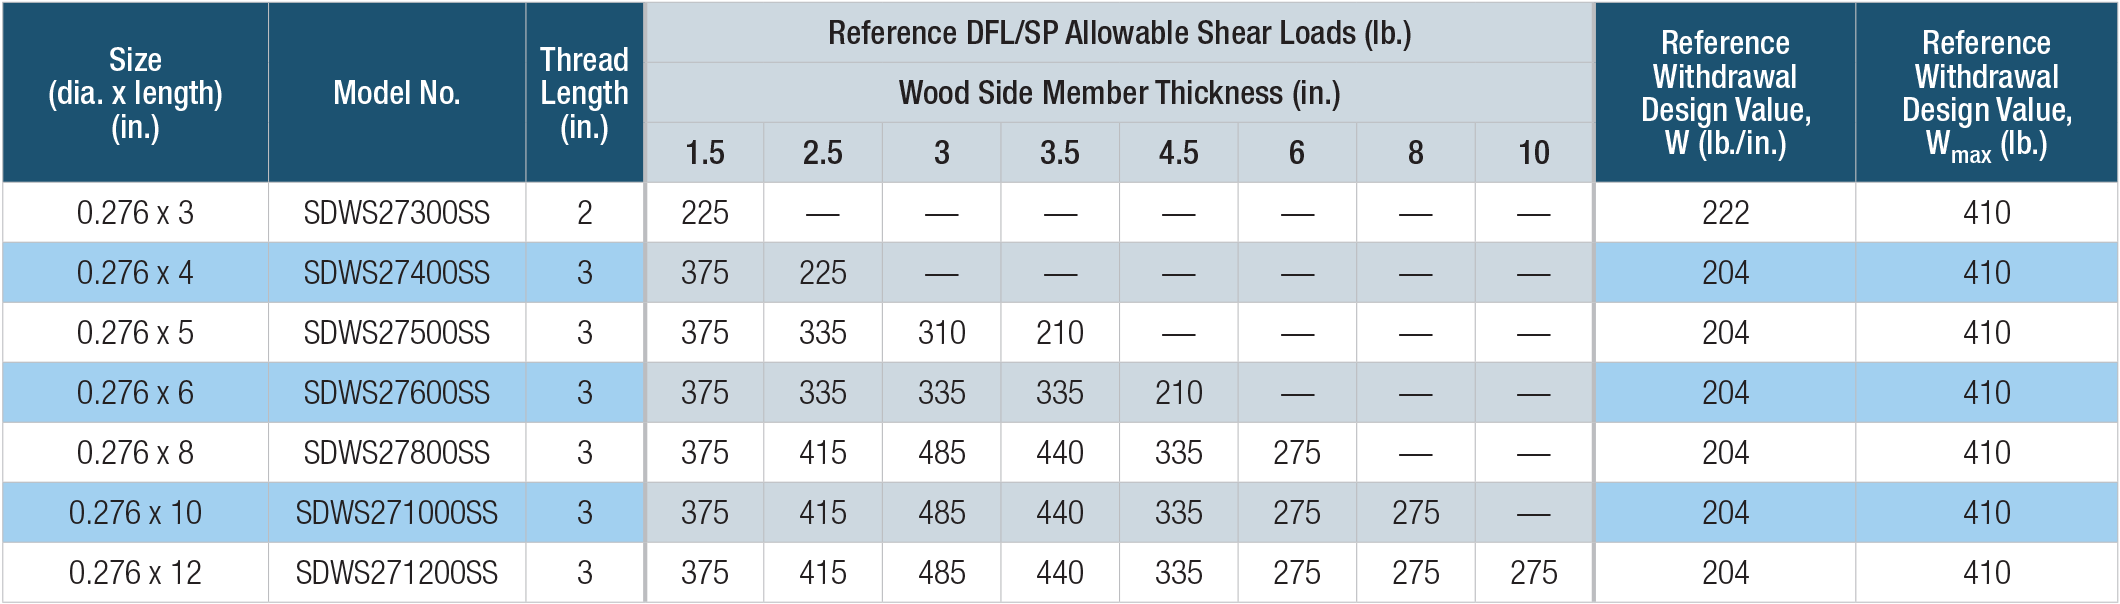 SDWS Timber SS — Allowable Shear Loads — Douglas Fir-Larch, Southern Pine Lumber